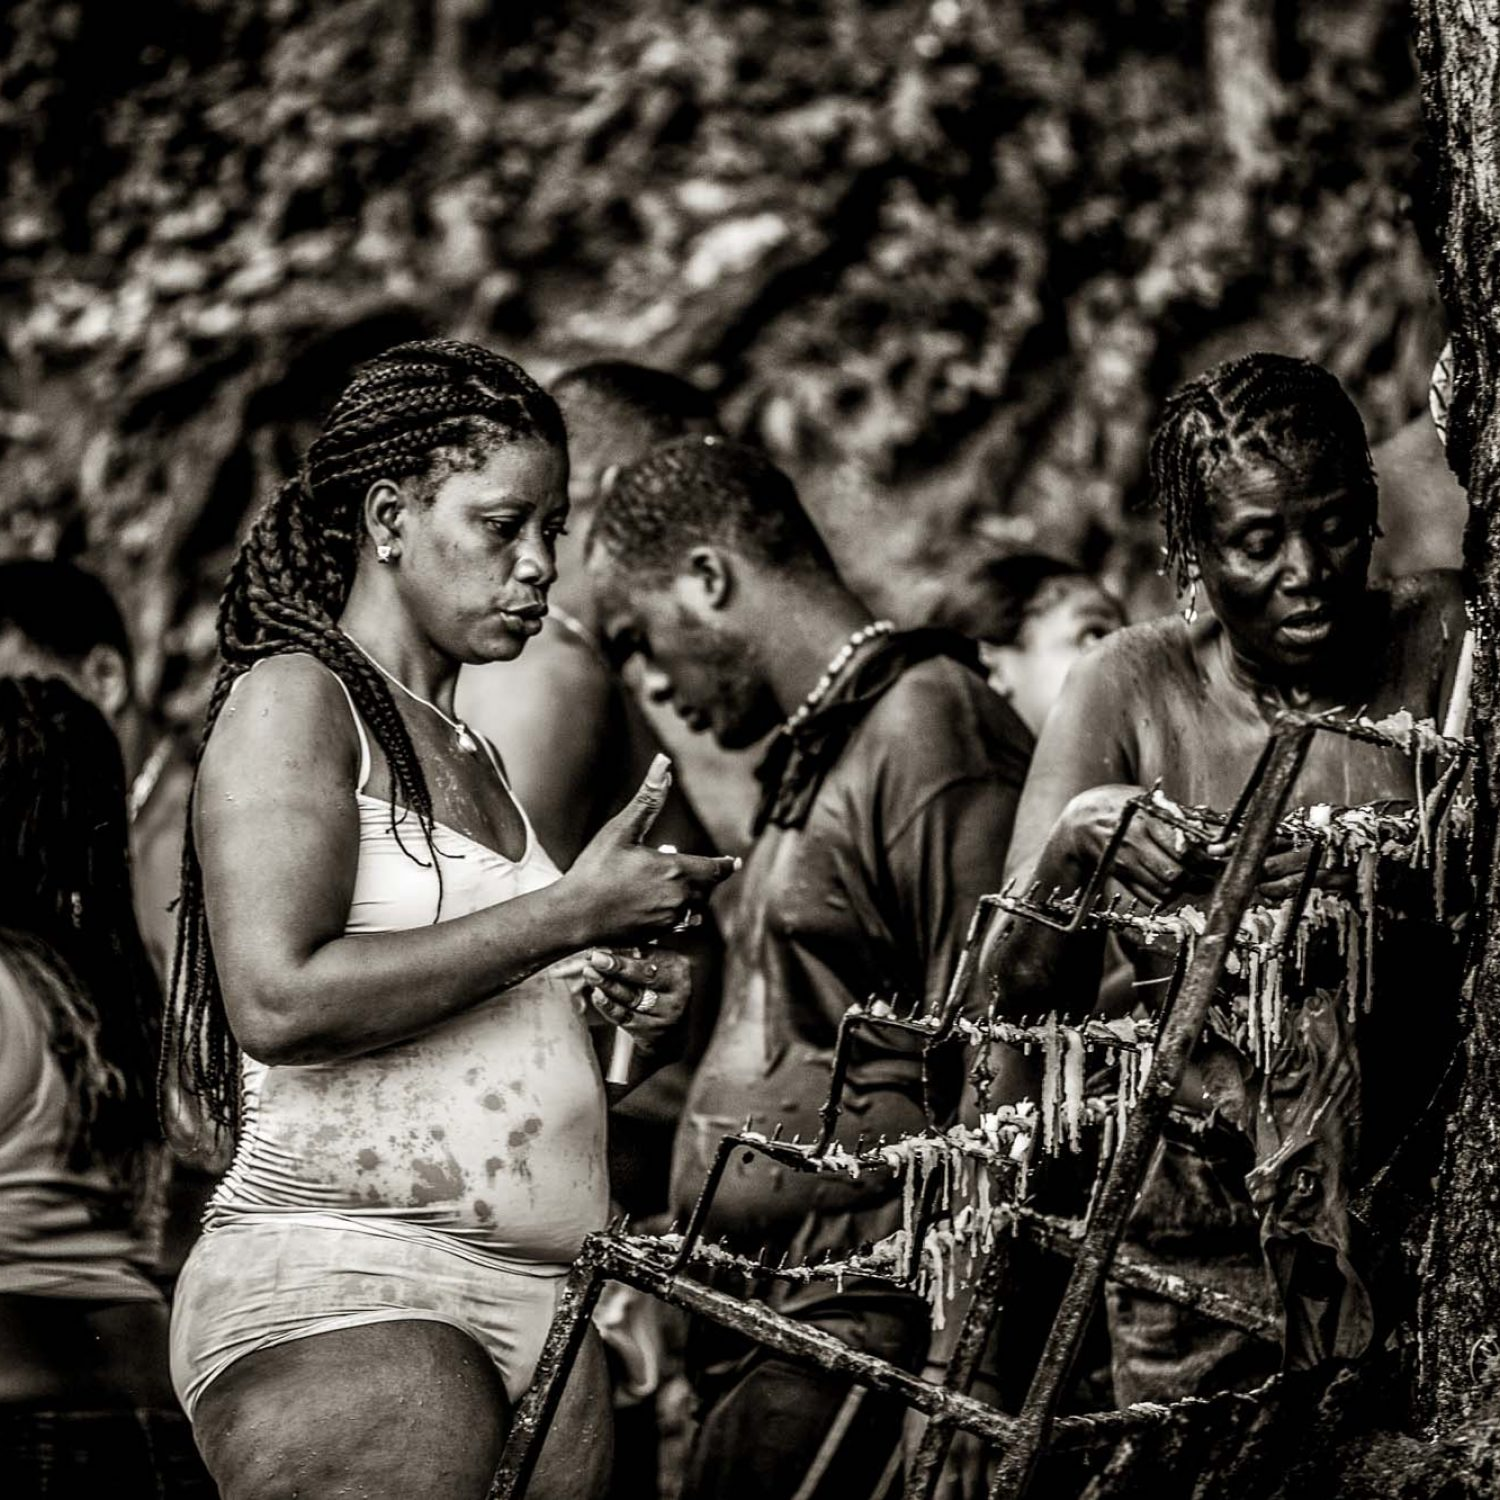 VOODOO BATHS IN HAITI:  FROM BEAUTY TO FIERCENESS